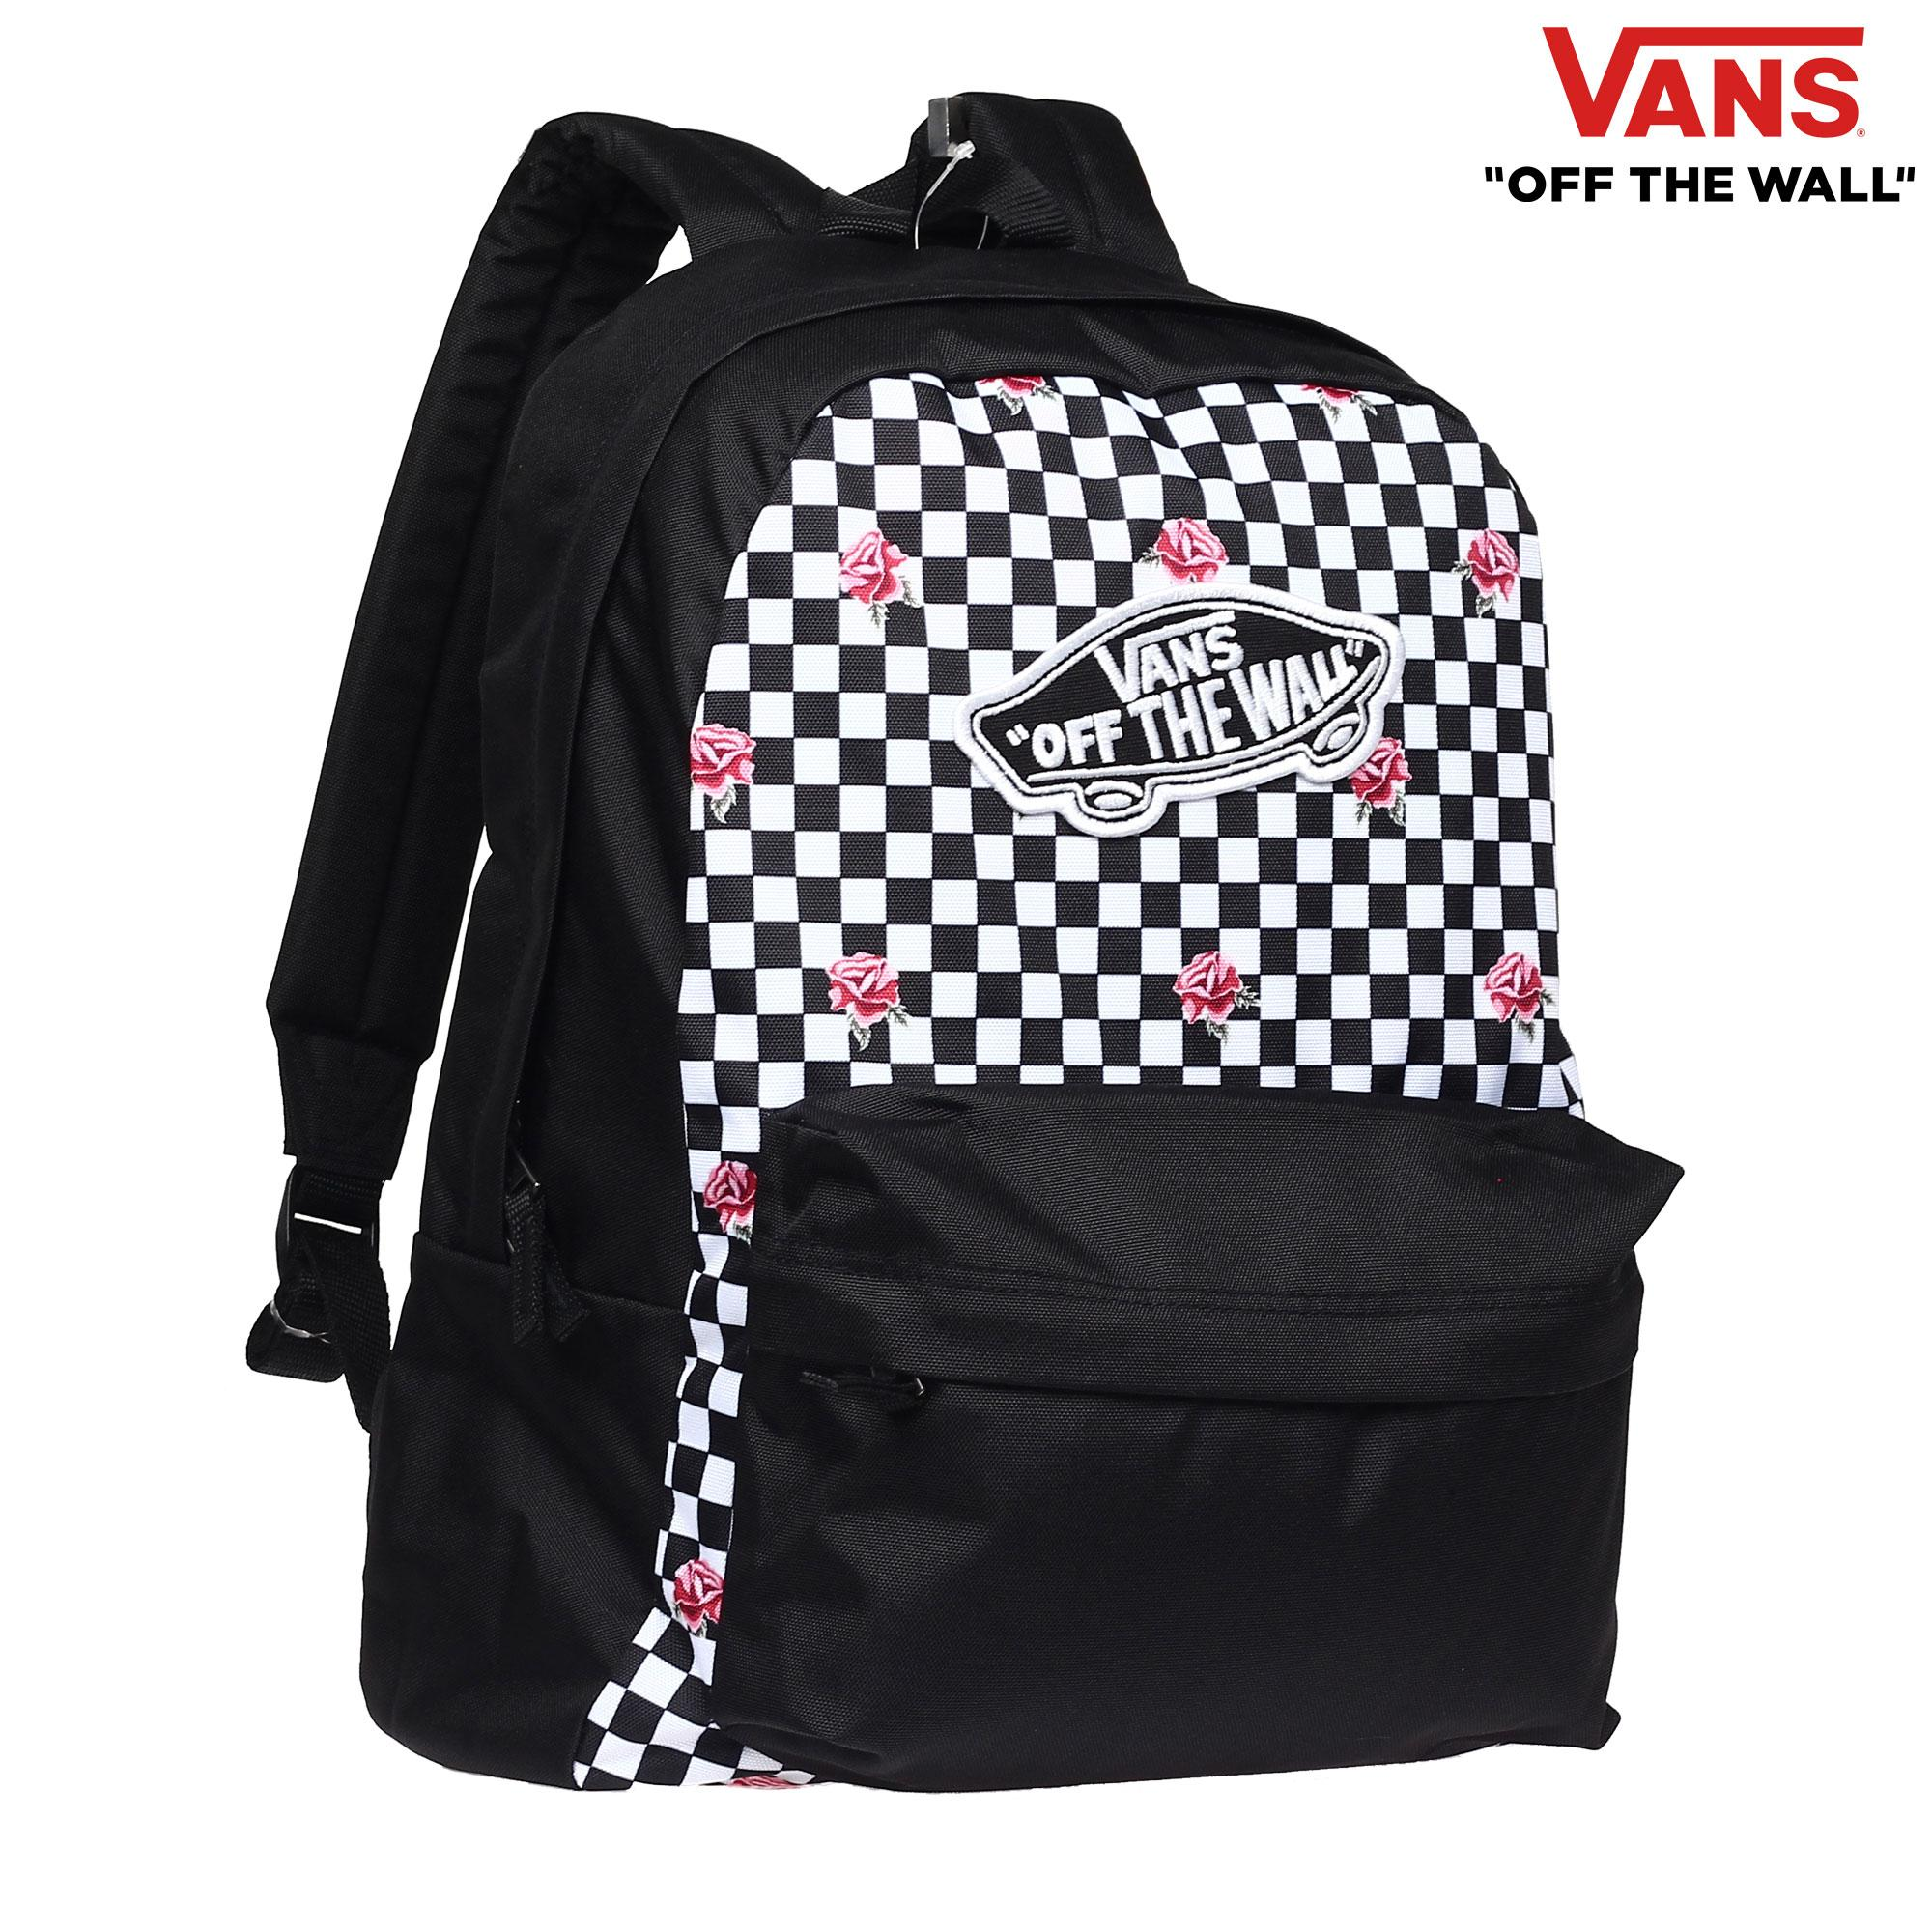 c844735536d Womens Backpack for sale - Backpack for Women online brands, prices ...